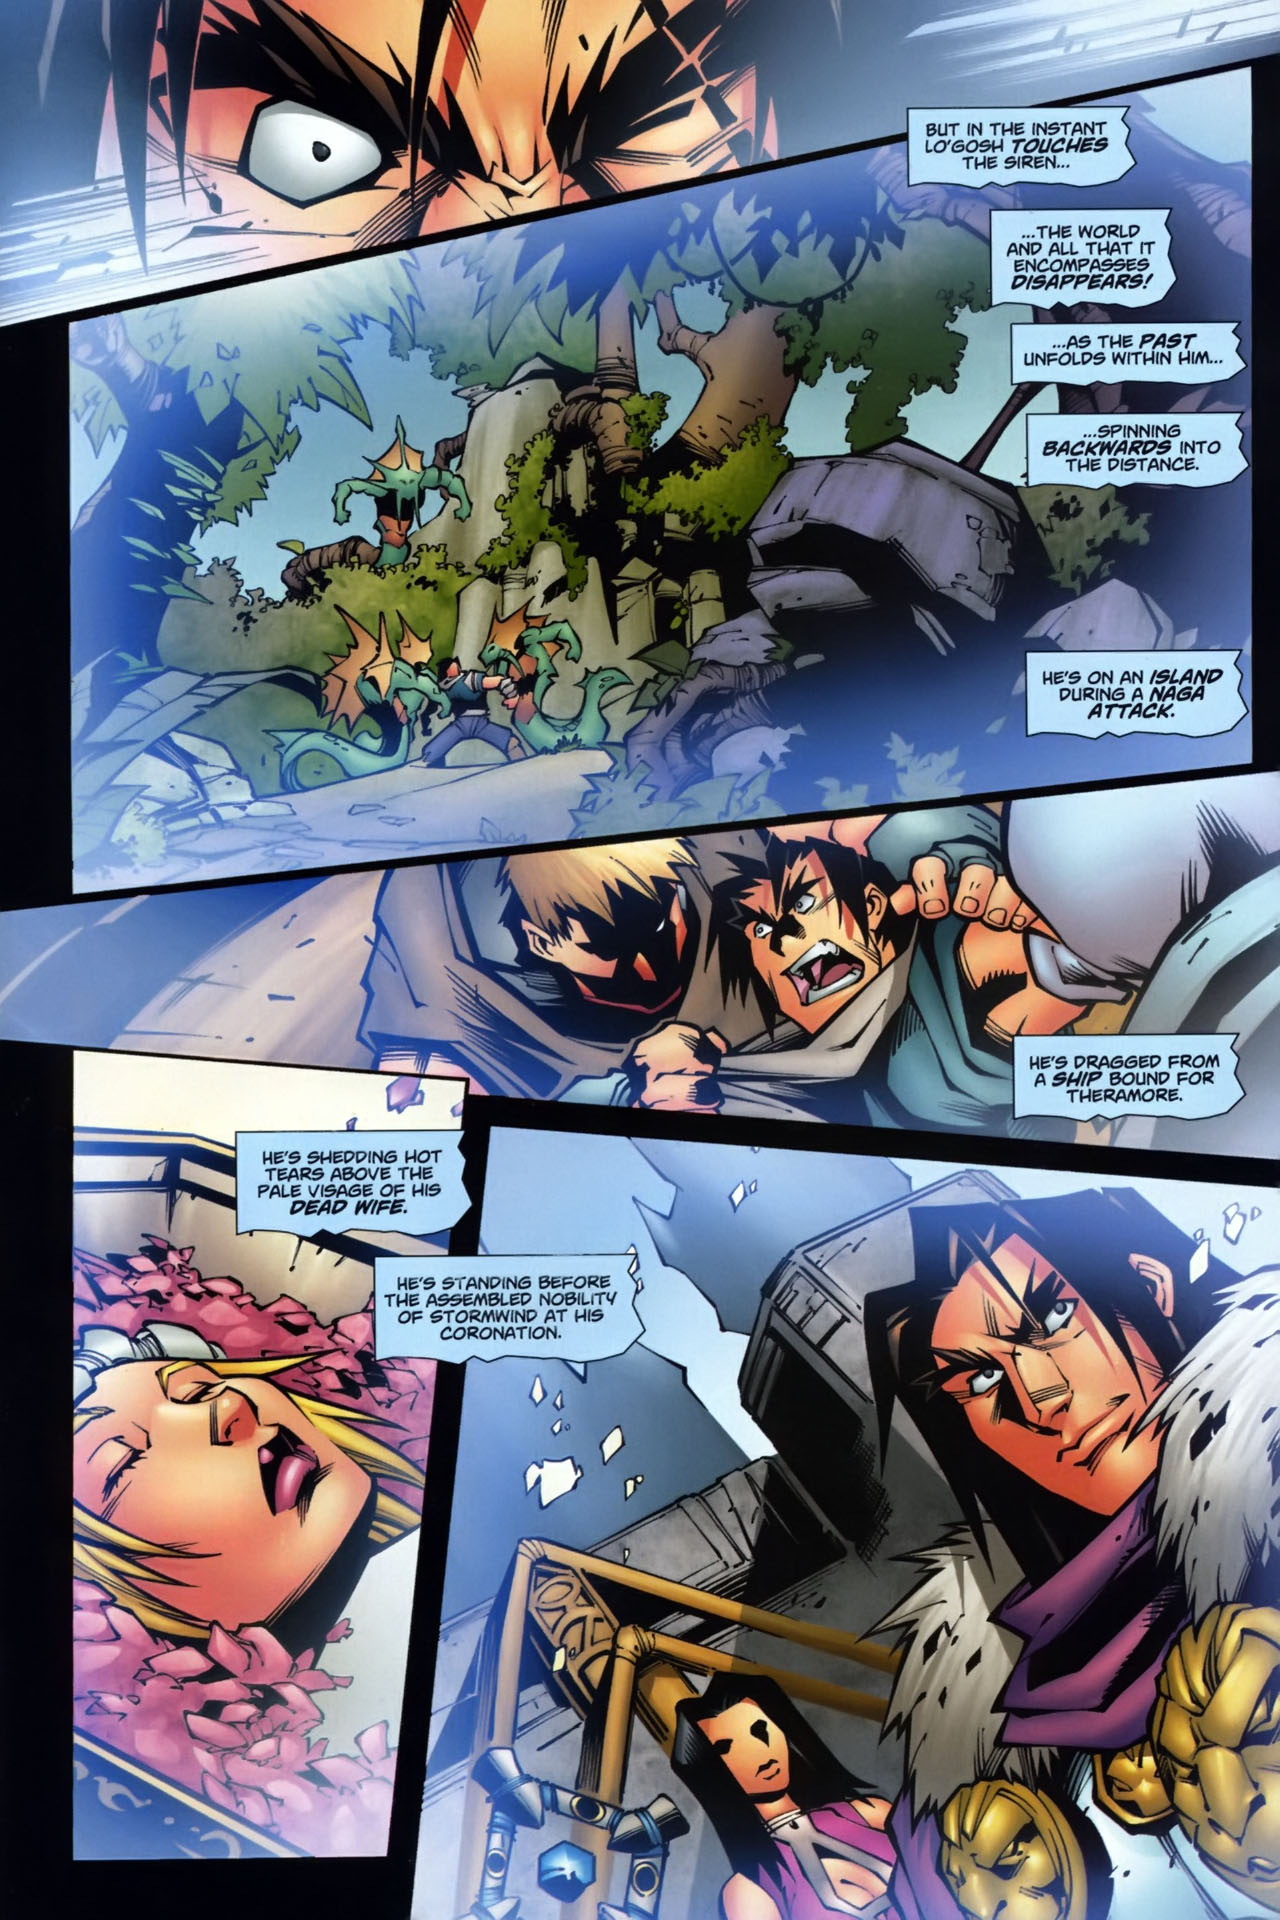 Read online World of Warcraft comic -  Issue #7 - 20